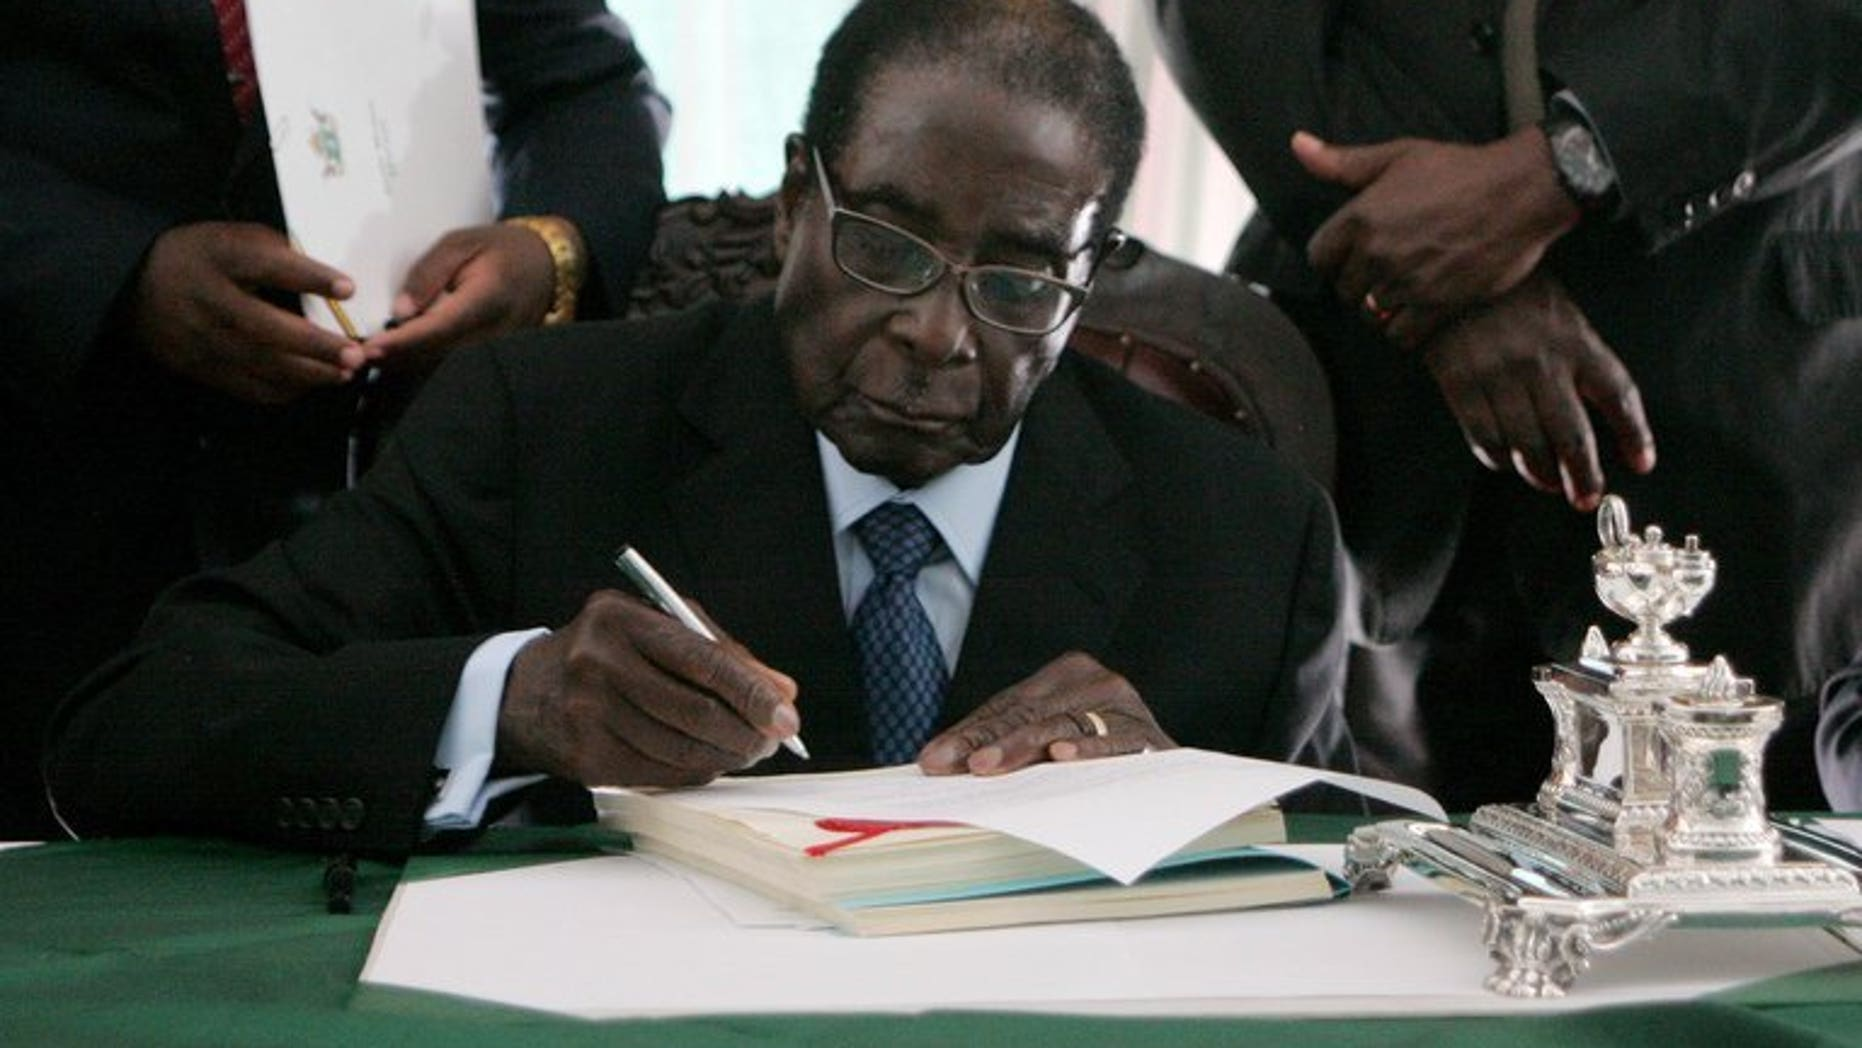 Zimbabwe President Robert Mugabe at the State House in Harare, May 22, 2013. Mugabe appears to have caved in to regional pressure to delay key elections, but analysts warn the veteran ruler could yet forge ahead with the polls without making key reforms.